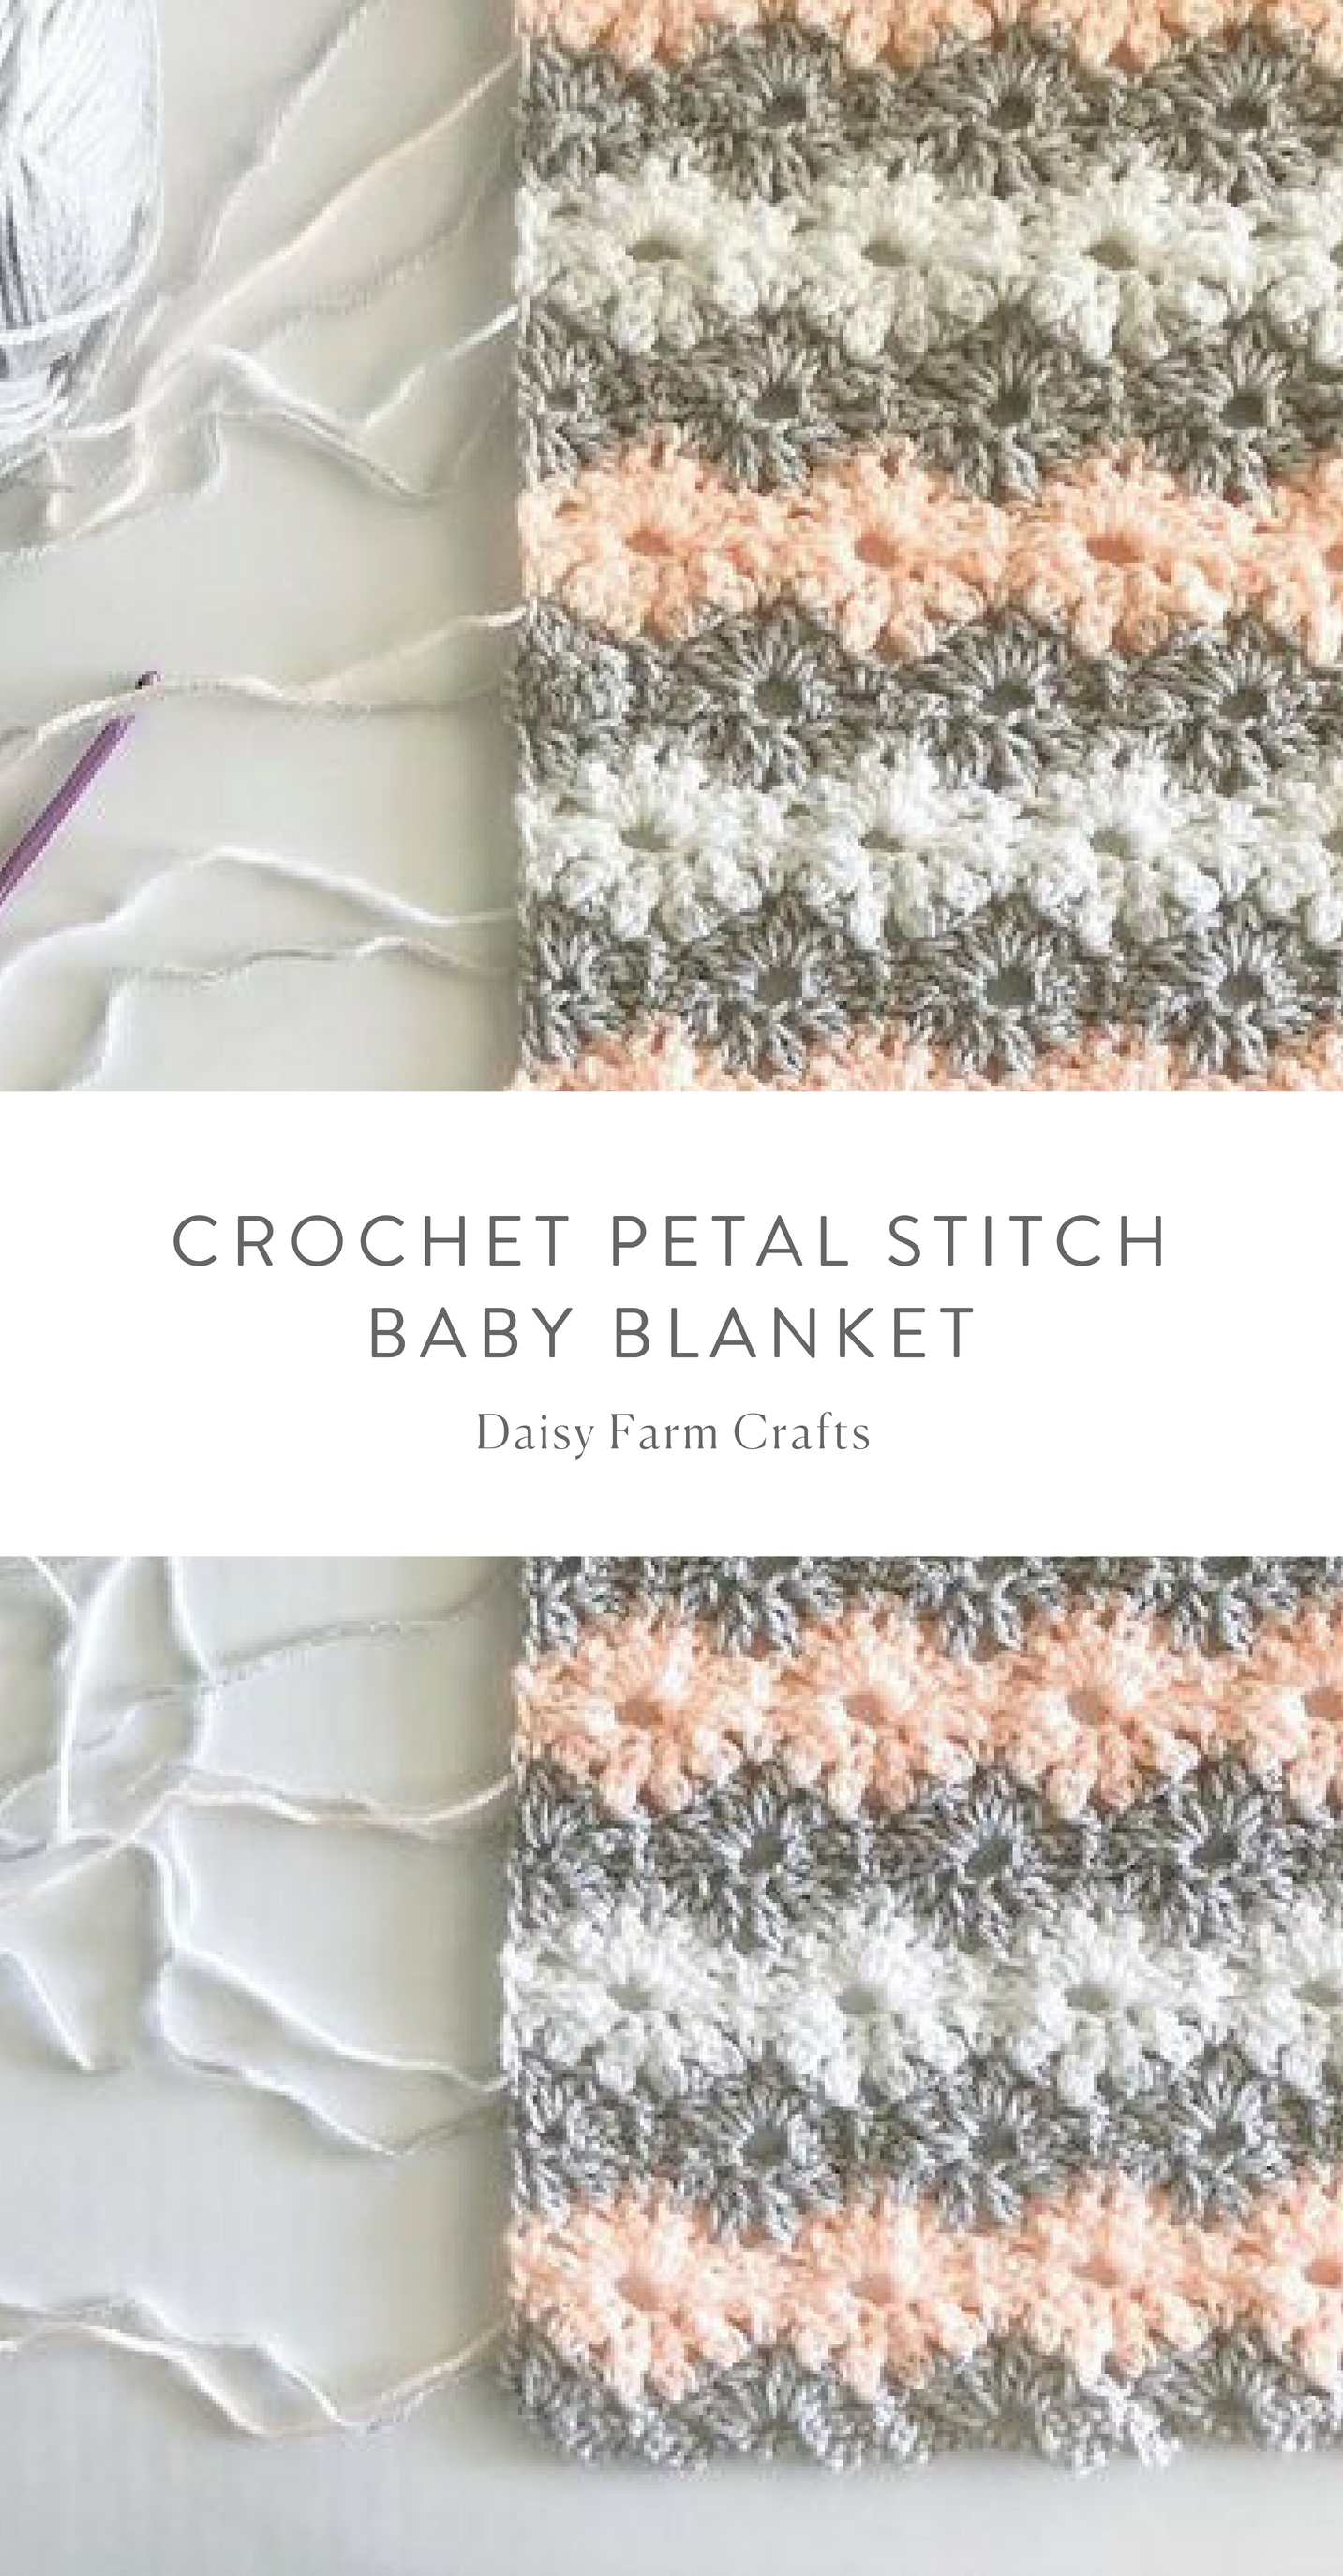 Free Pattern - Crochet Petal Stitch Baby Blanket #crochet | Art in ...